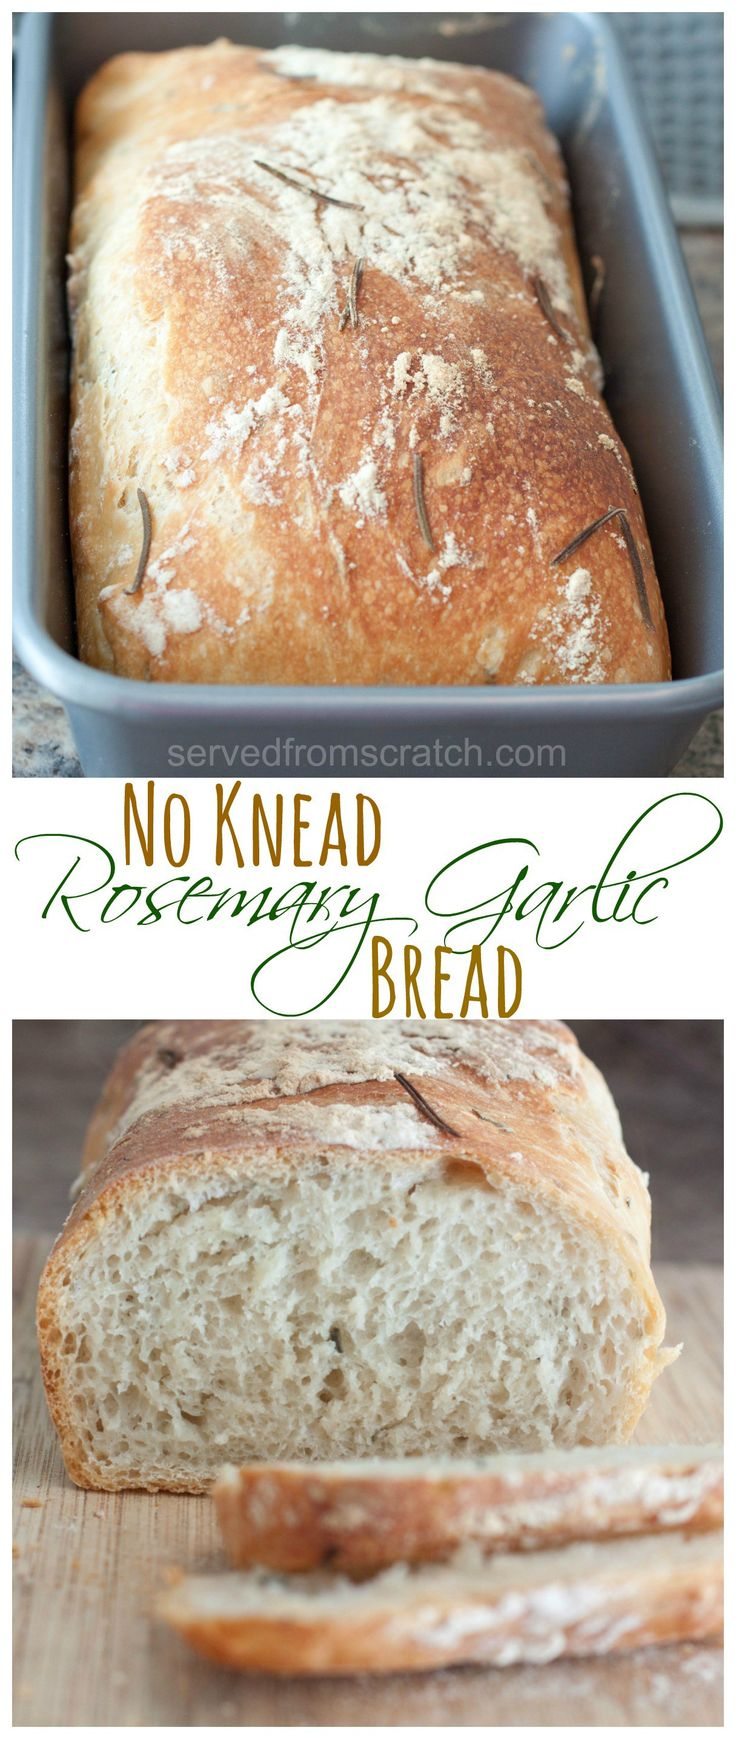 Crispy crust, soft chewy center, No Knead Rosemary Garlic Bread                                                                                                                                                                                 More